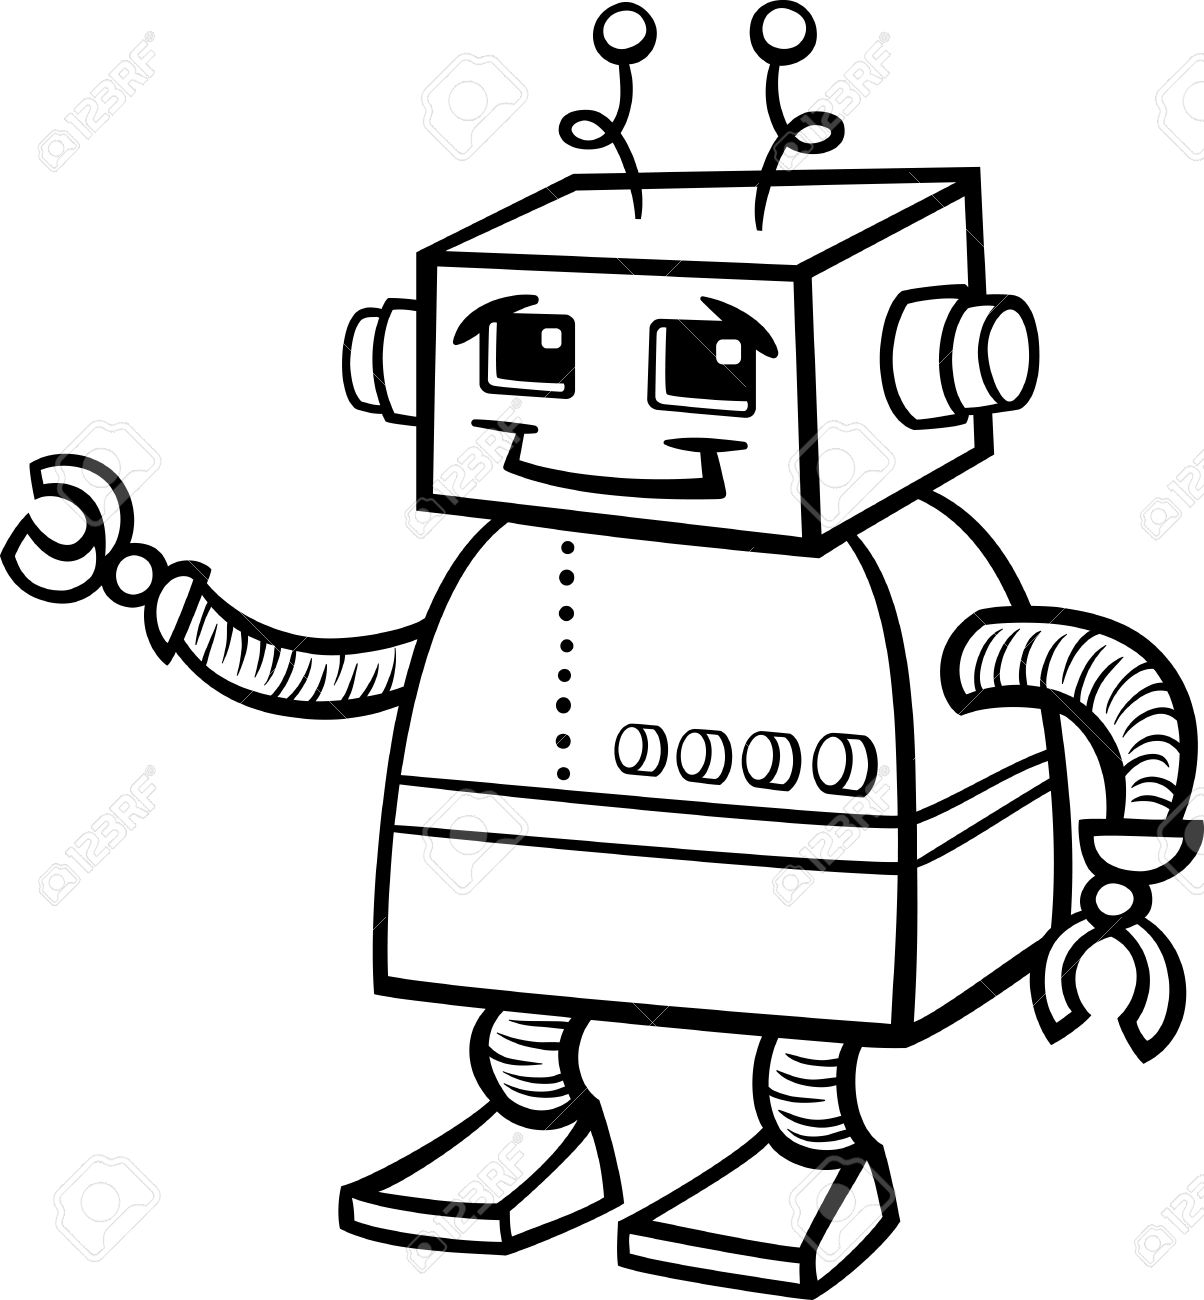 Black robot clipart clipart transparent library Robot Clipart Black And White | Free download best Robot Clipart ... clipart transparent library